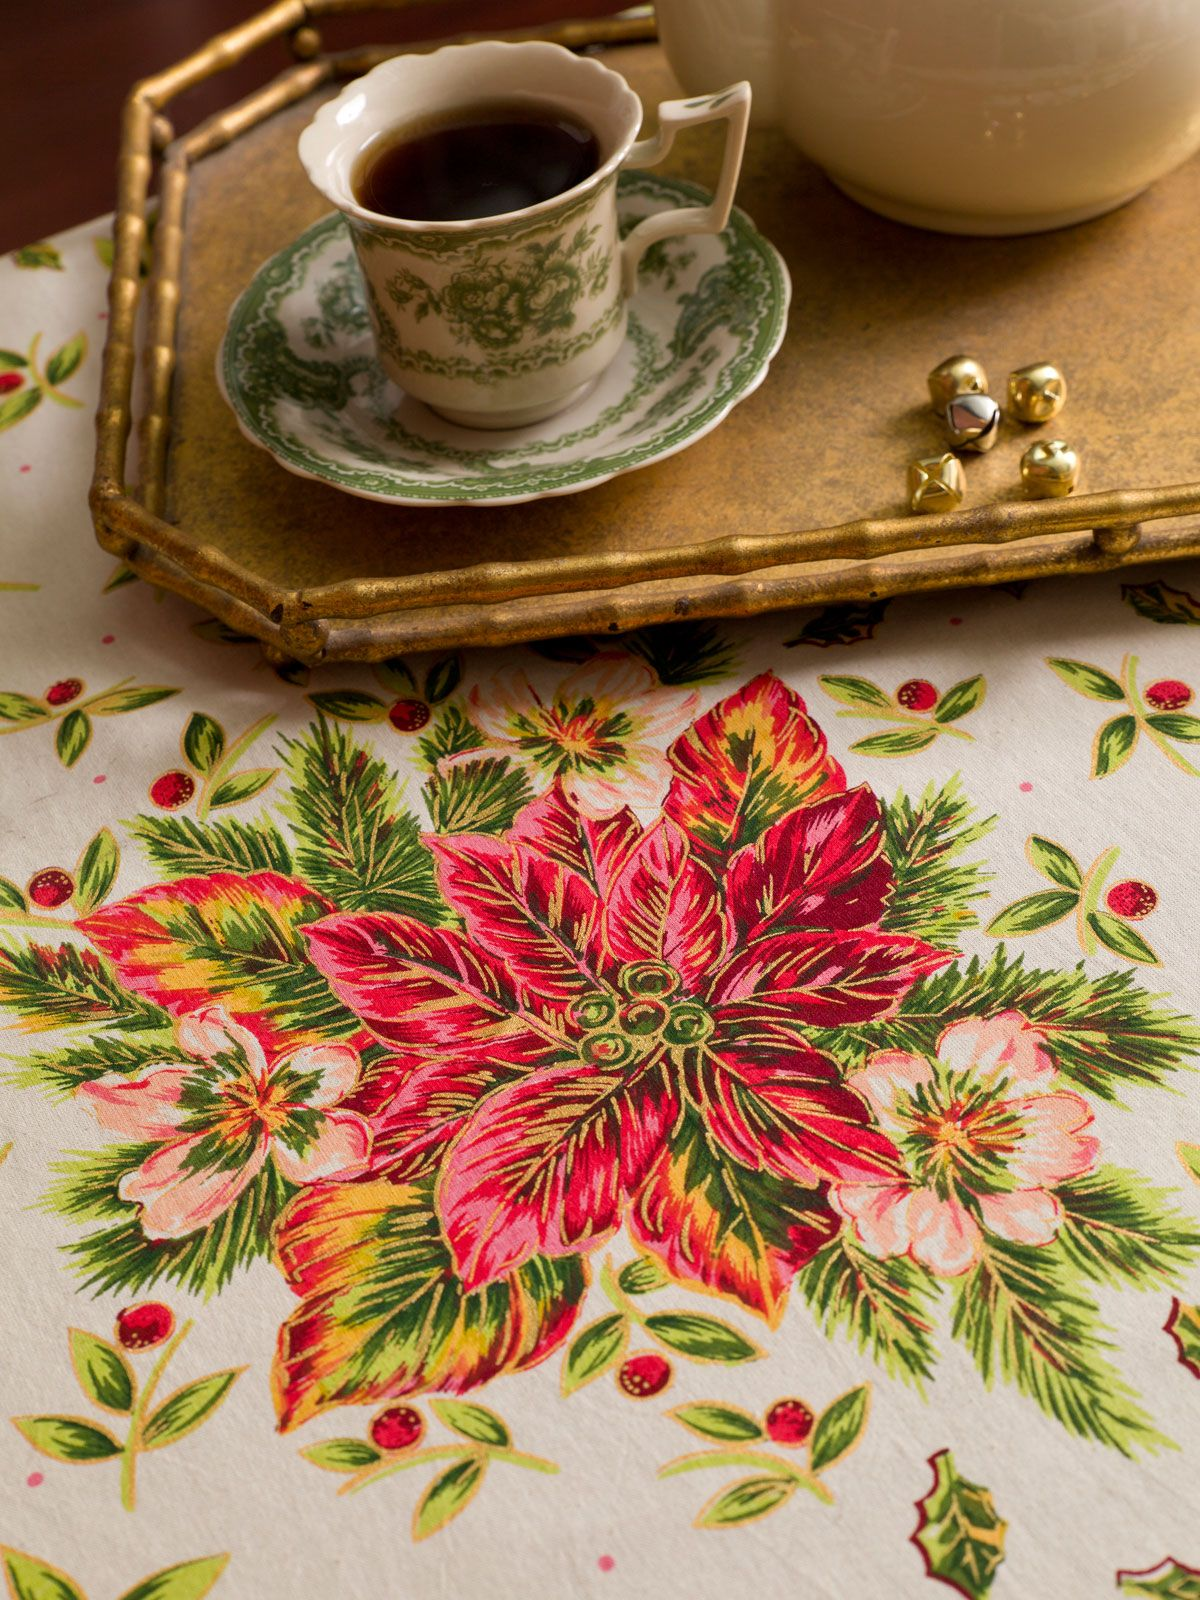 Superieur A Classic Symbol Of The Holidays With A Bit Of Flair, Our Poinsettia  Tablecloth Will